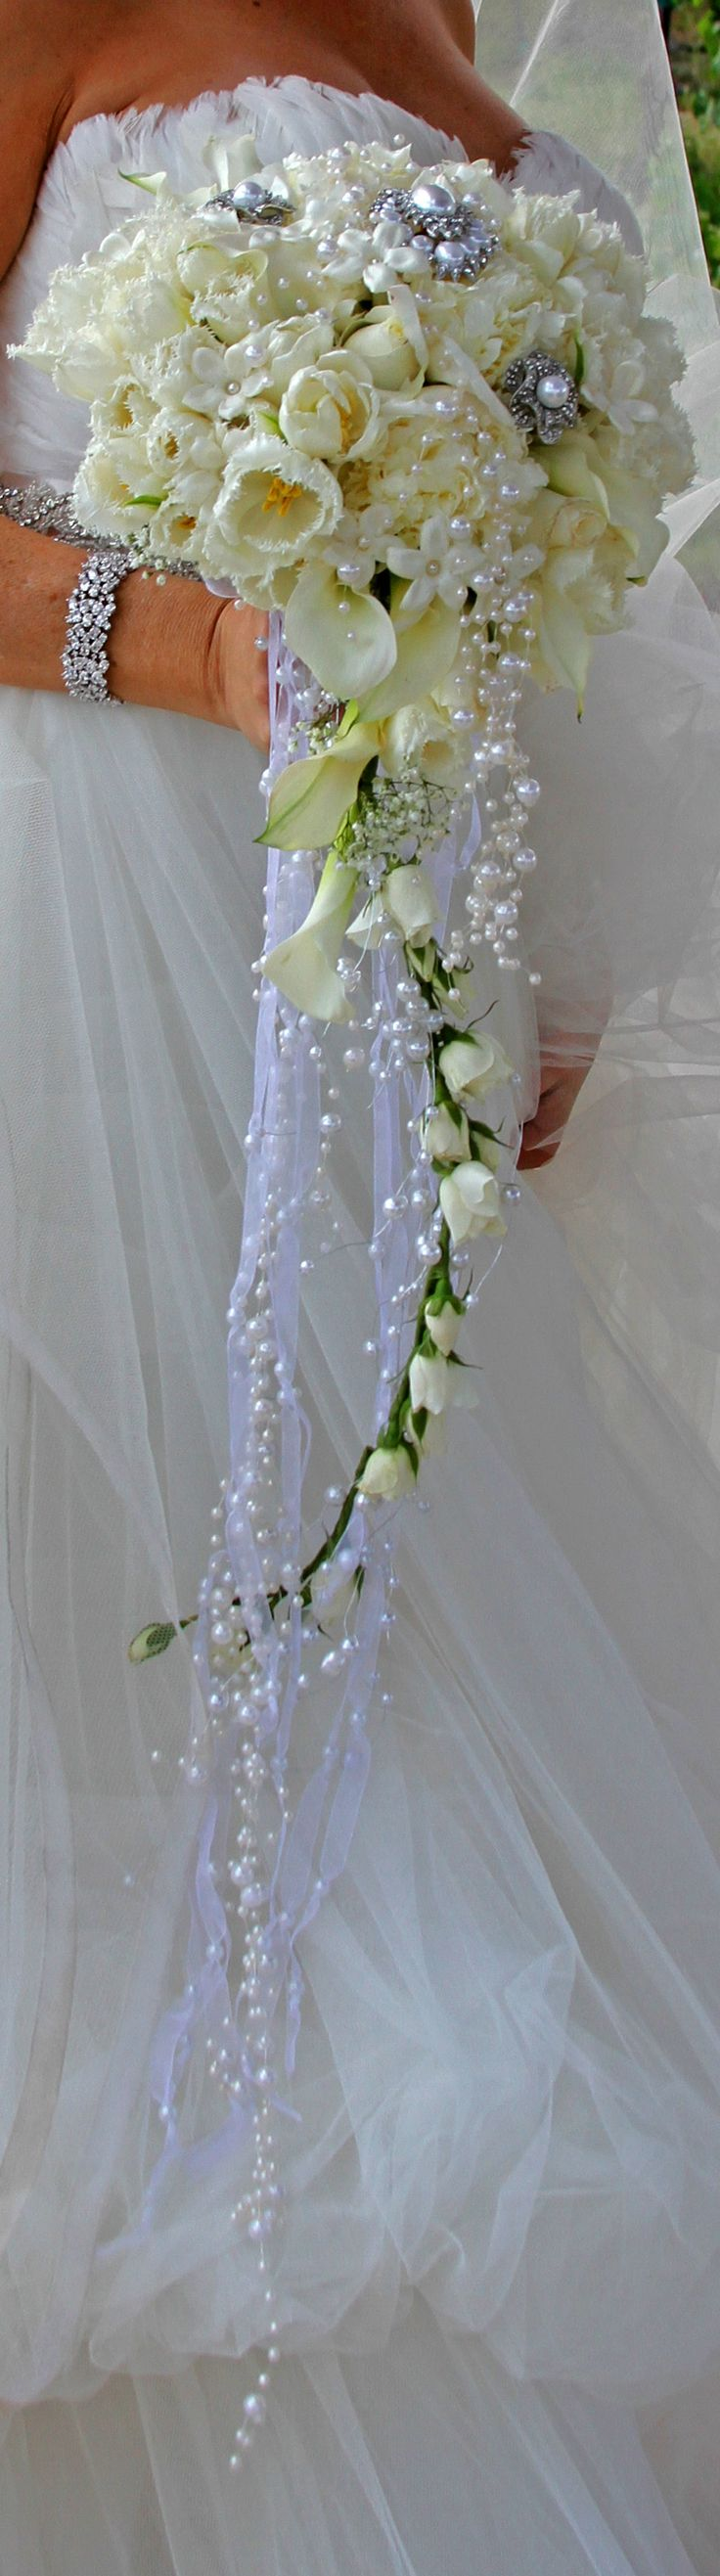 Brides 20's inspired cascade bouquet with broaches and falling pearls and sheer ribbon Floral design by Suzanne M Smith www.suzannemsmithdesigns.com